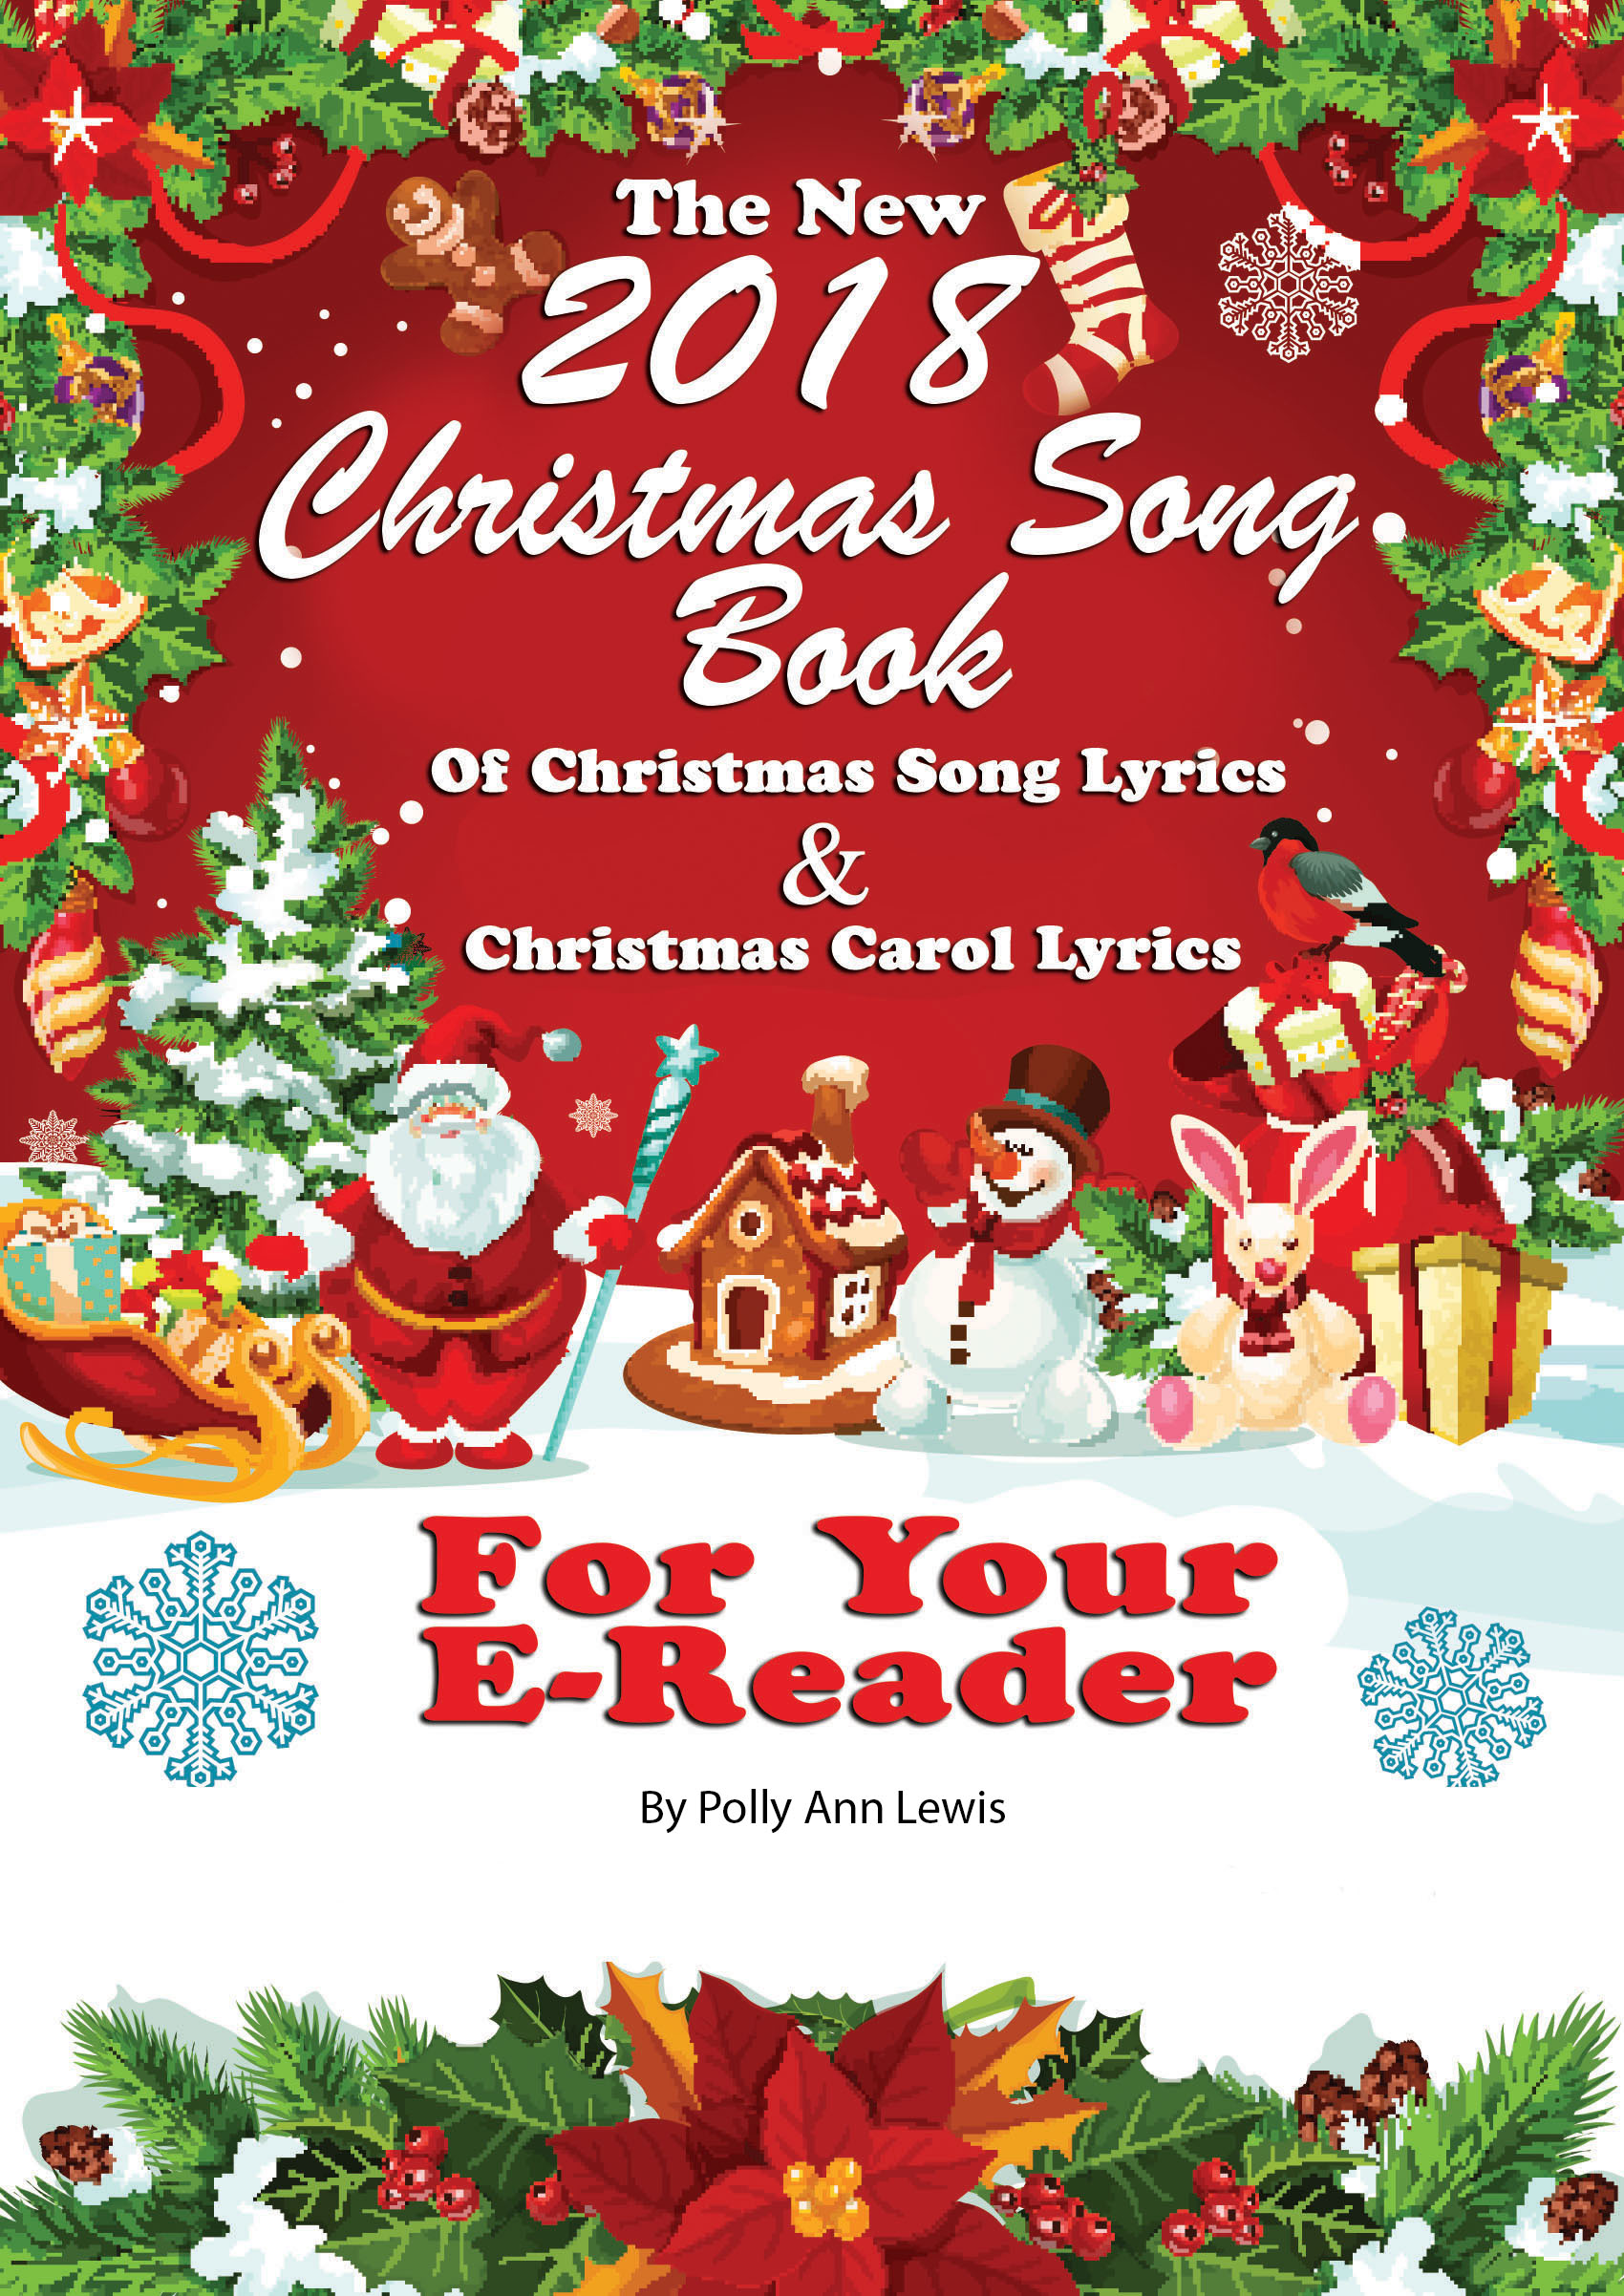 Christmas Singin.The New 2018 Christmas Song Book Of Christmas Song Lyrics And Christmas Carol Lyrics For Your E Reader An Ebook By Polly Ann Lewis